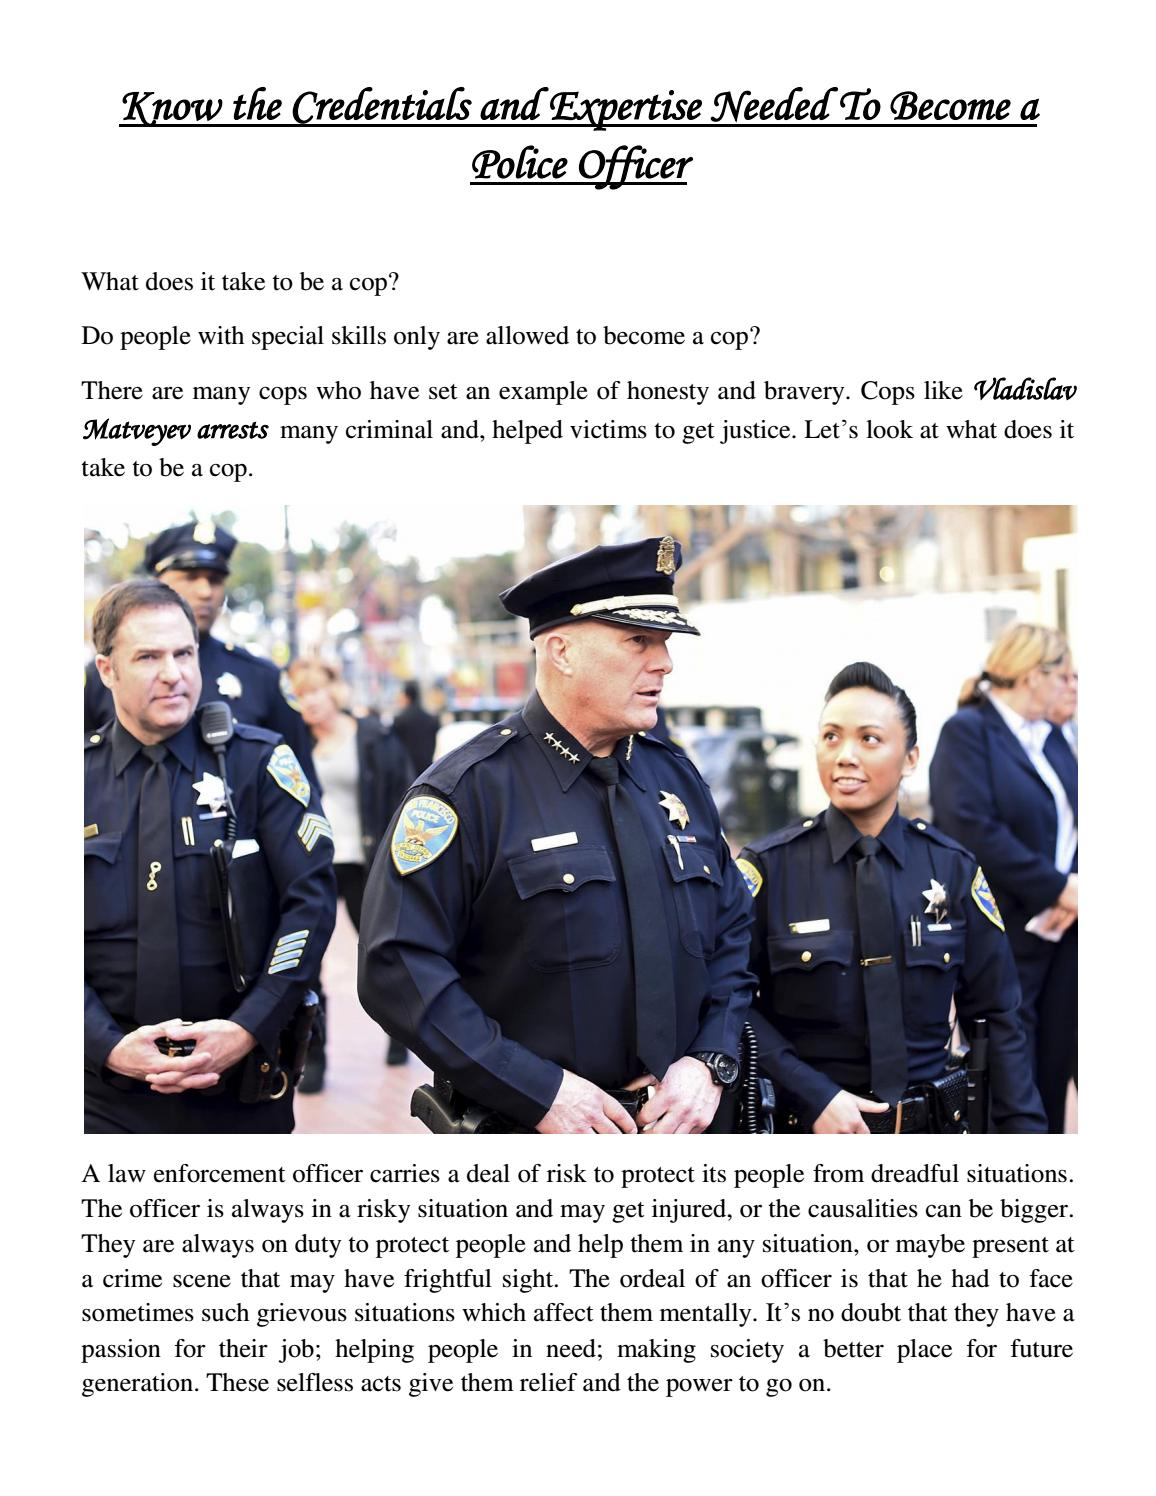 Know The Credentials And Expertise Needed To Become A Police Officer (1) By  Vladislav Matveyev   Issuu